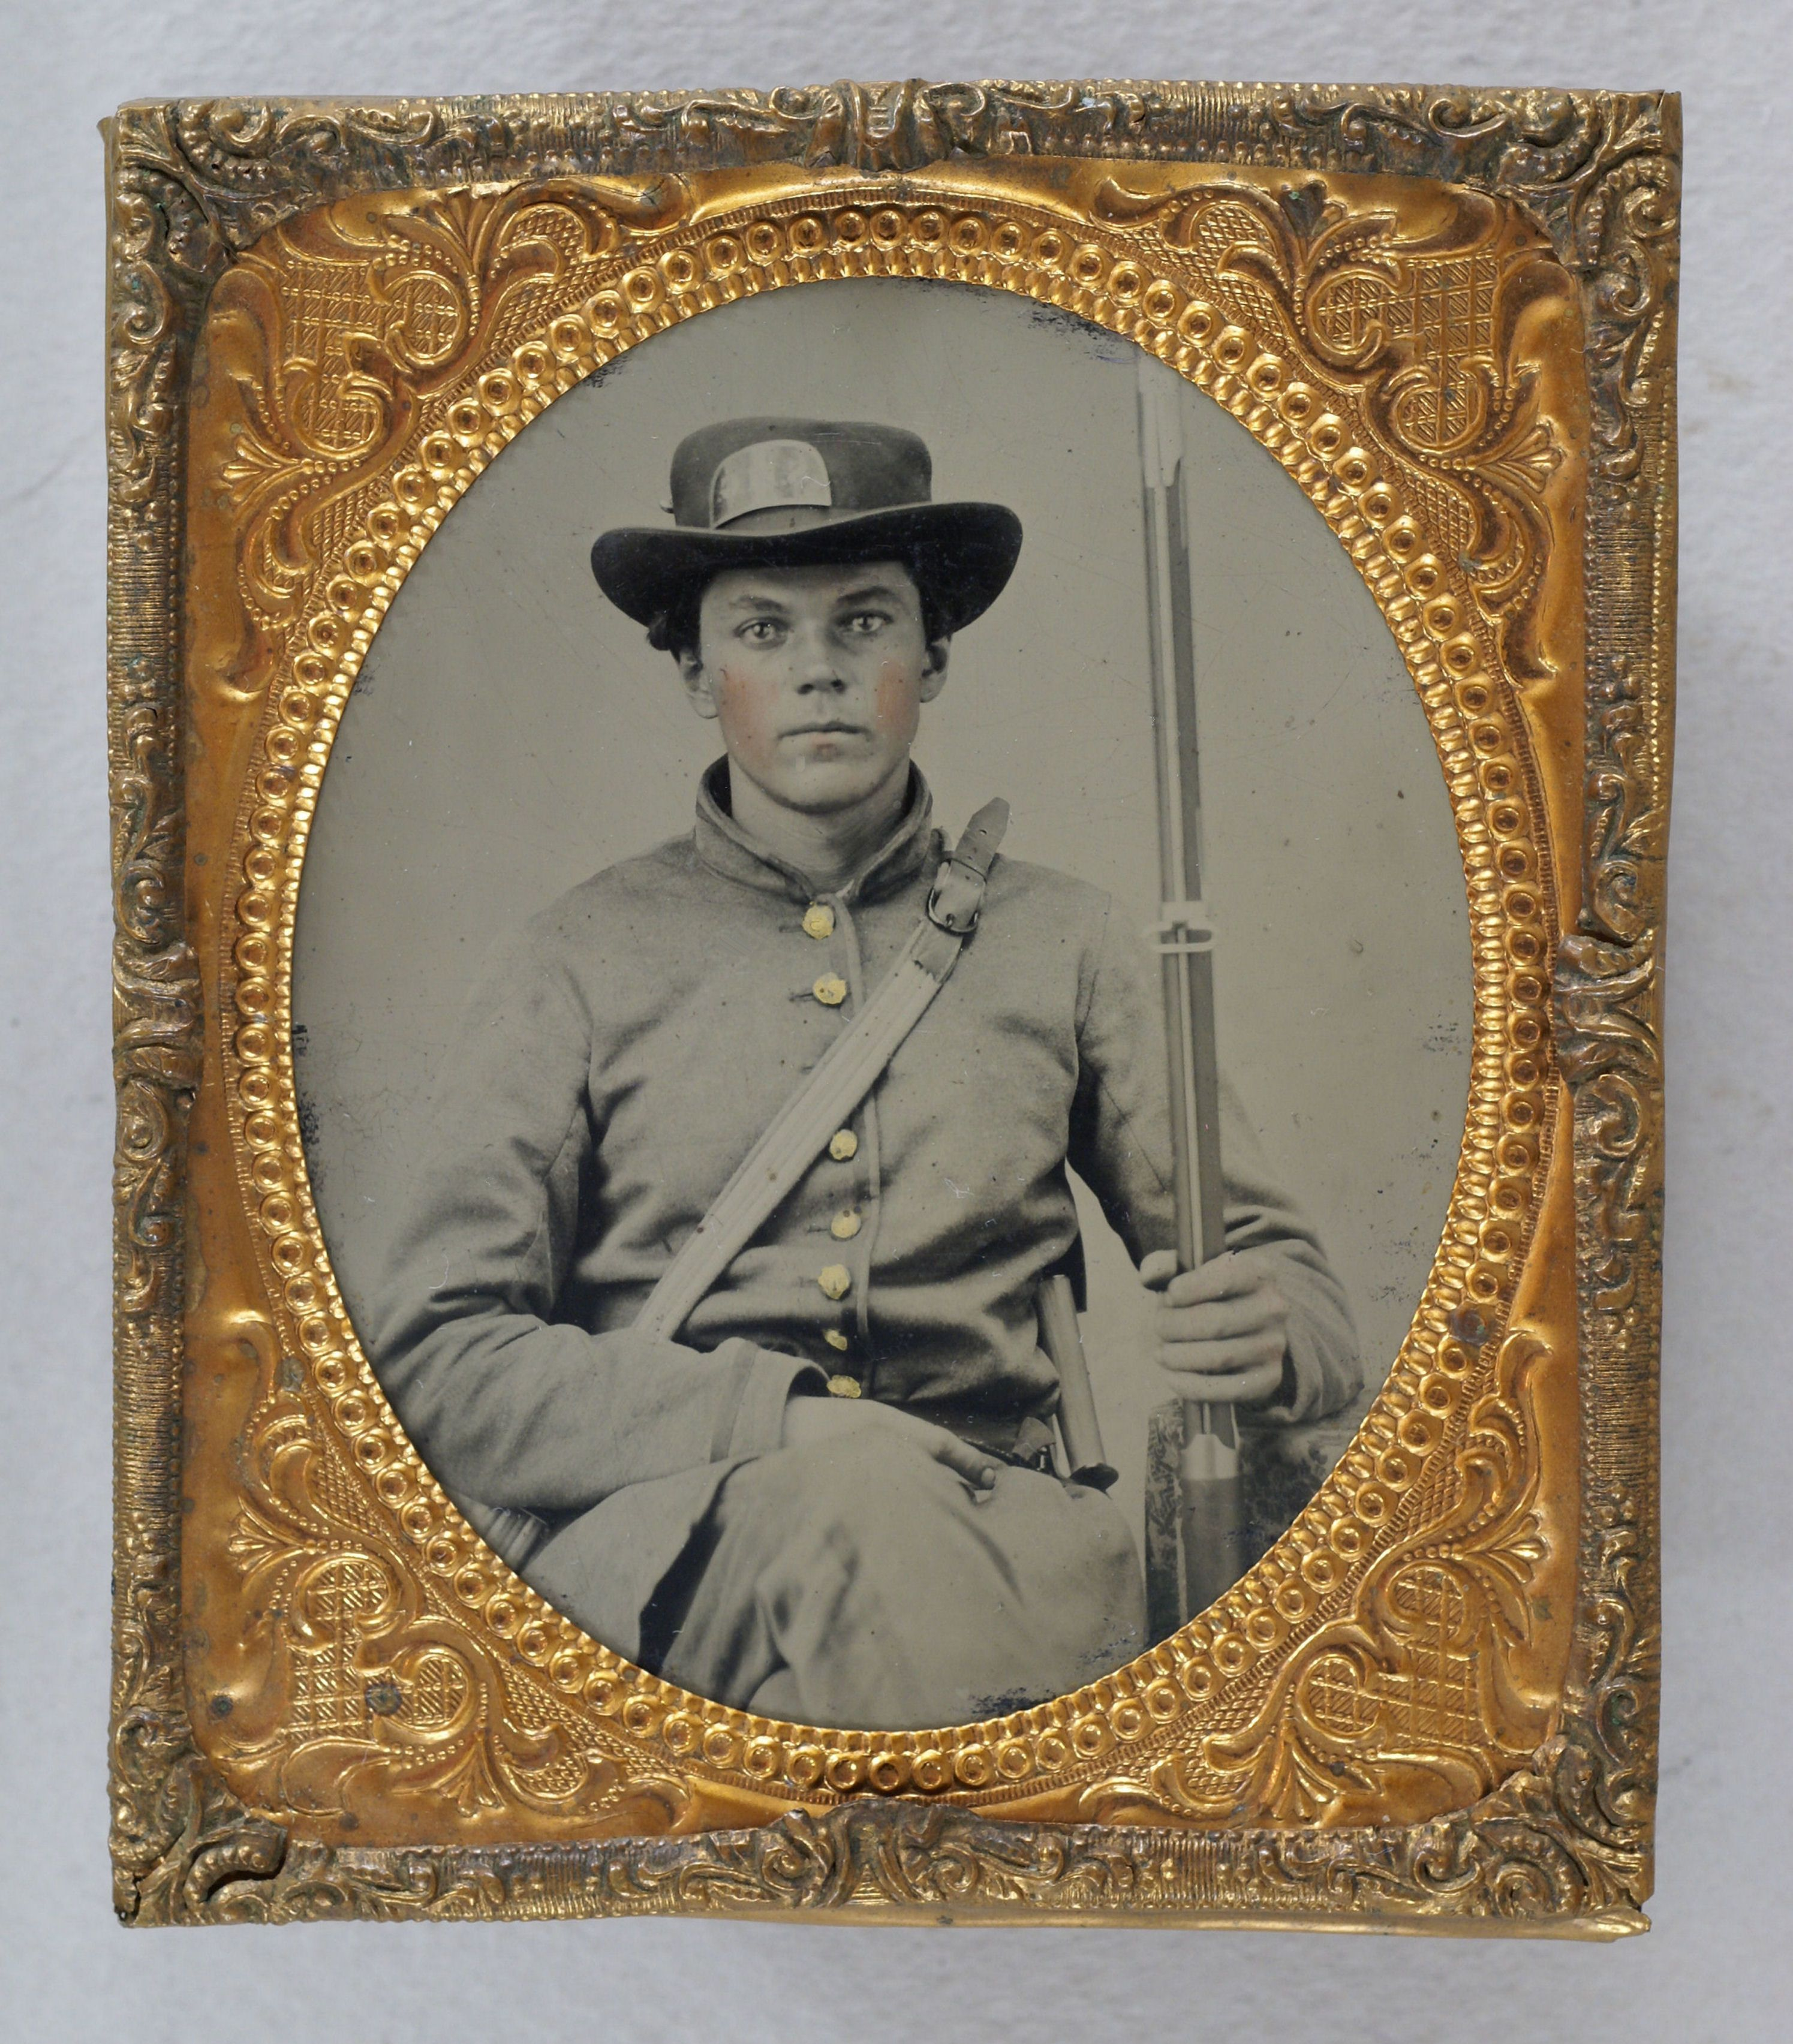 Ambrotype of Georgia soldier with SHG (Stephens Home Guards) on his ...